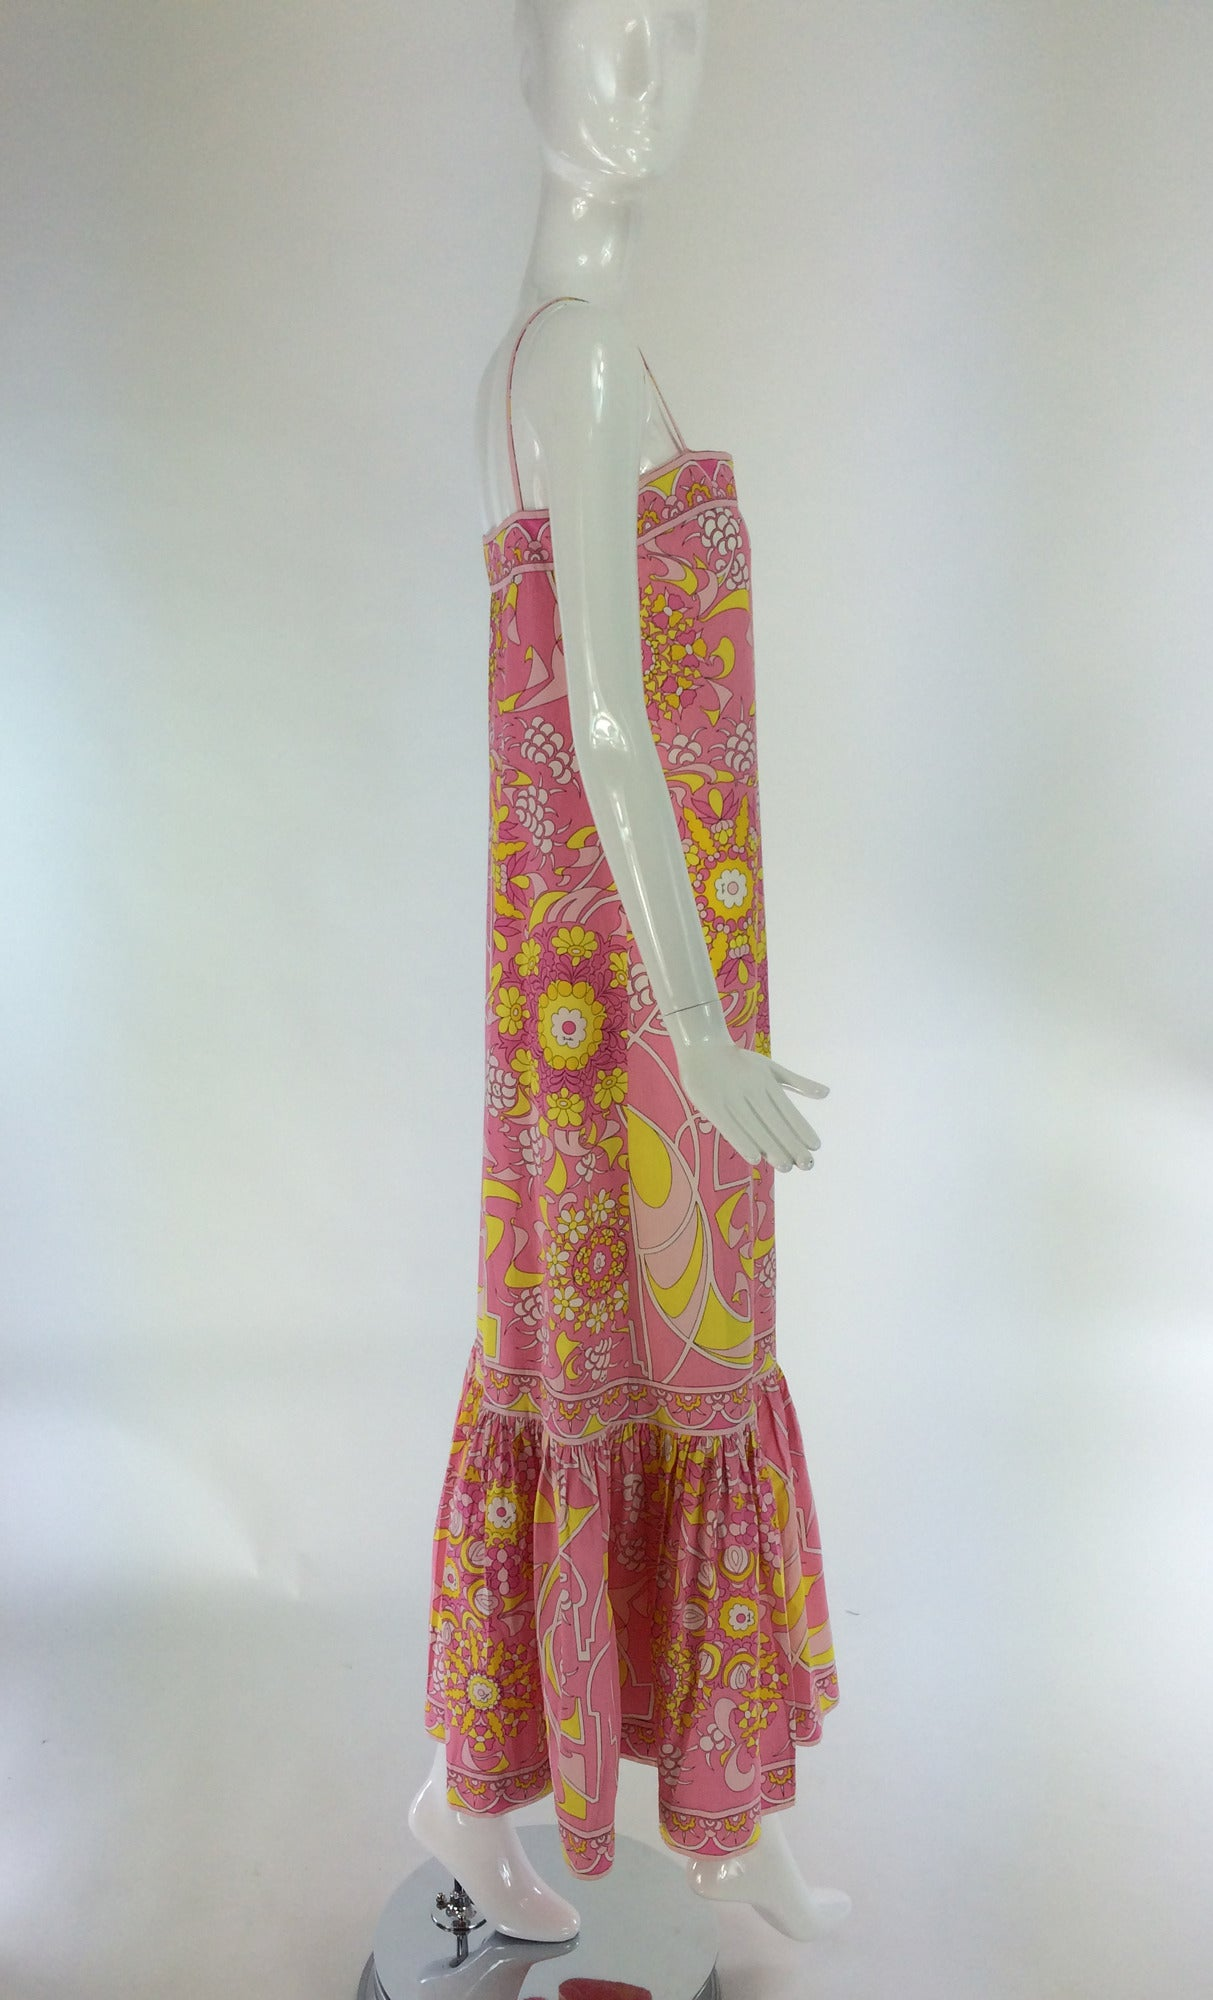 Emilio Pucci printed cotton maxi dress out of the ordinary design 1960s 5